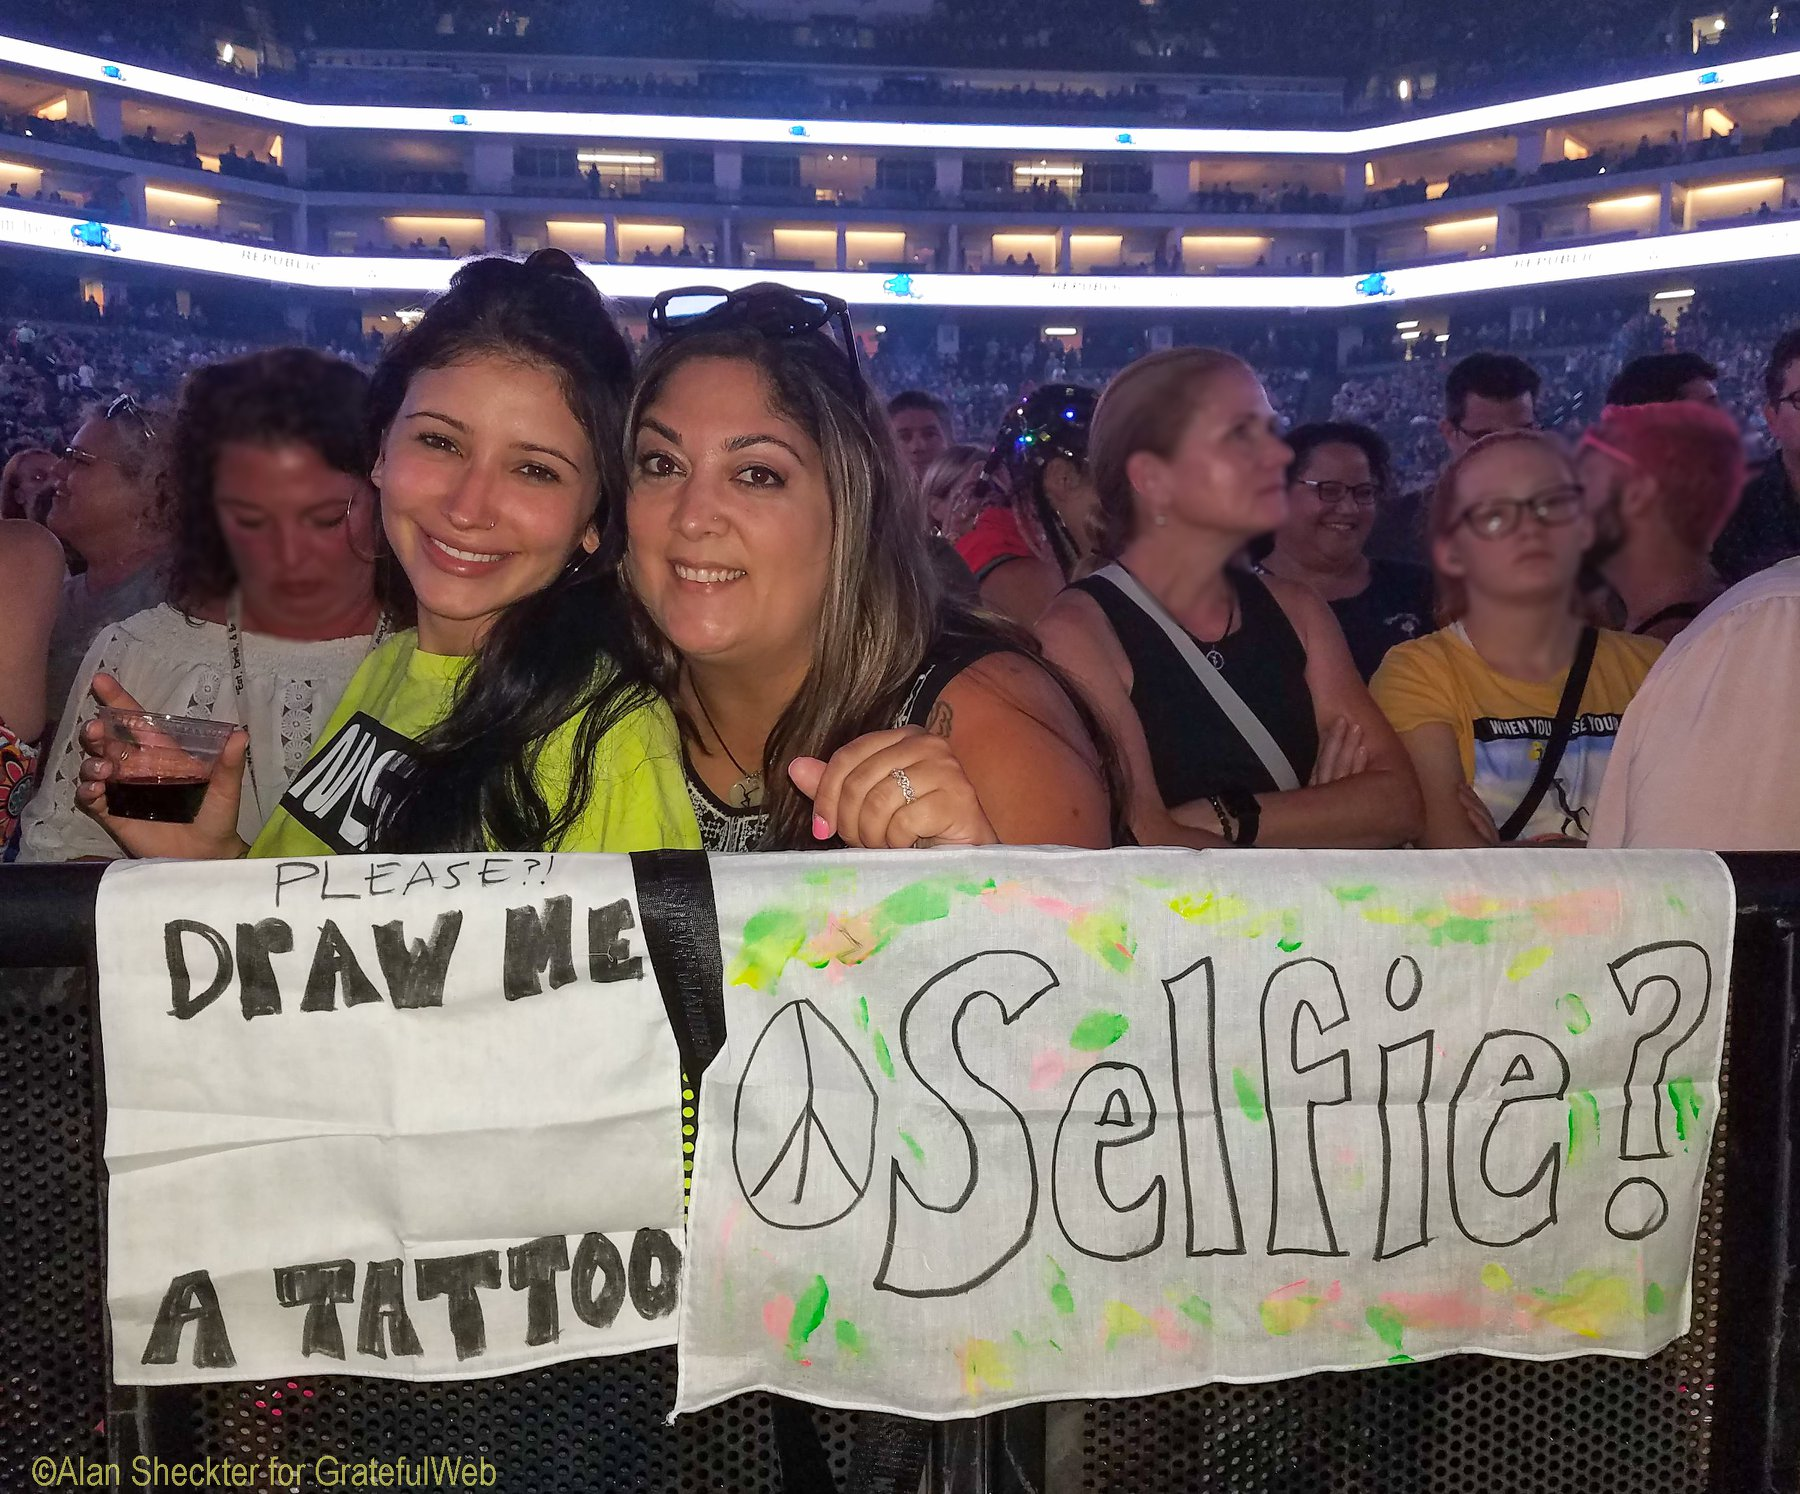 Perched in front of the stage, Emily Rivera (right) and her friend Dee, tried to entice Dave Matthews, who is also a visual artist, to come down and hang